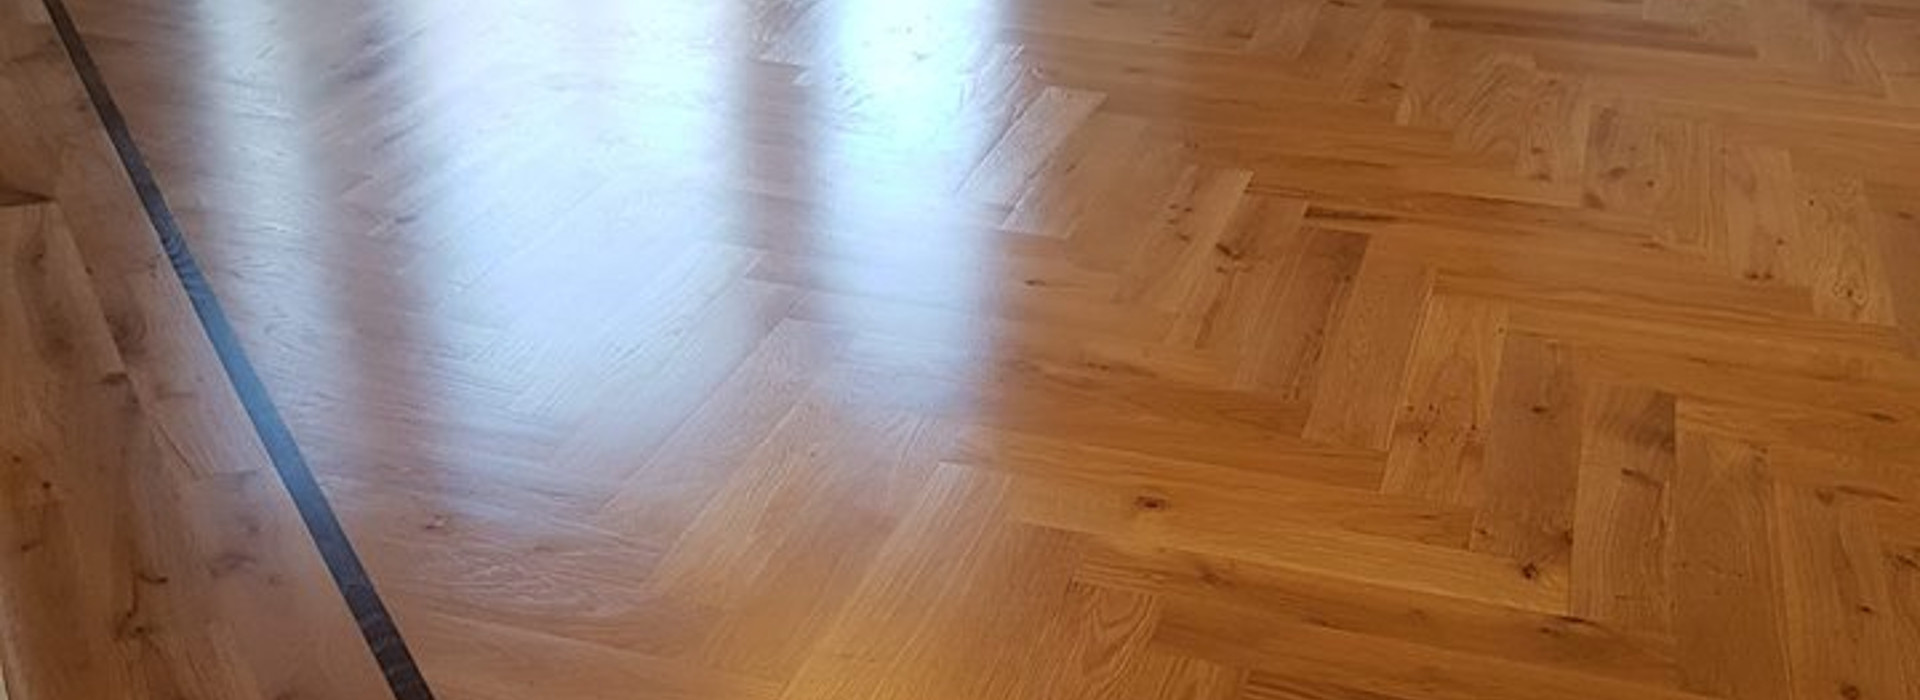 Add luxury and prestige to your home by Parquet flooring